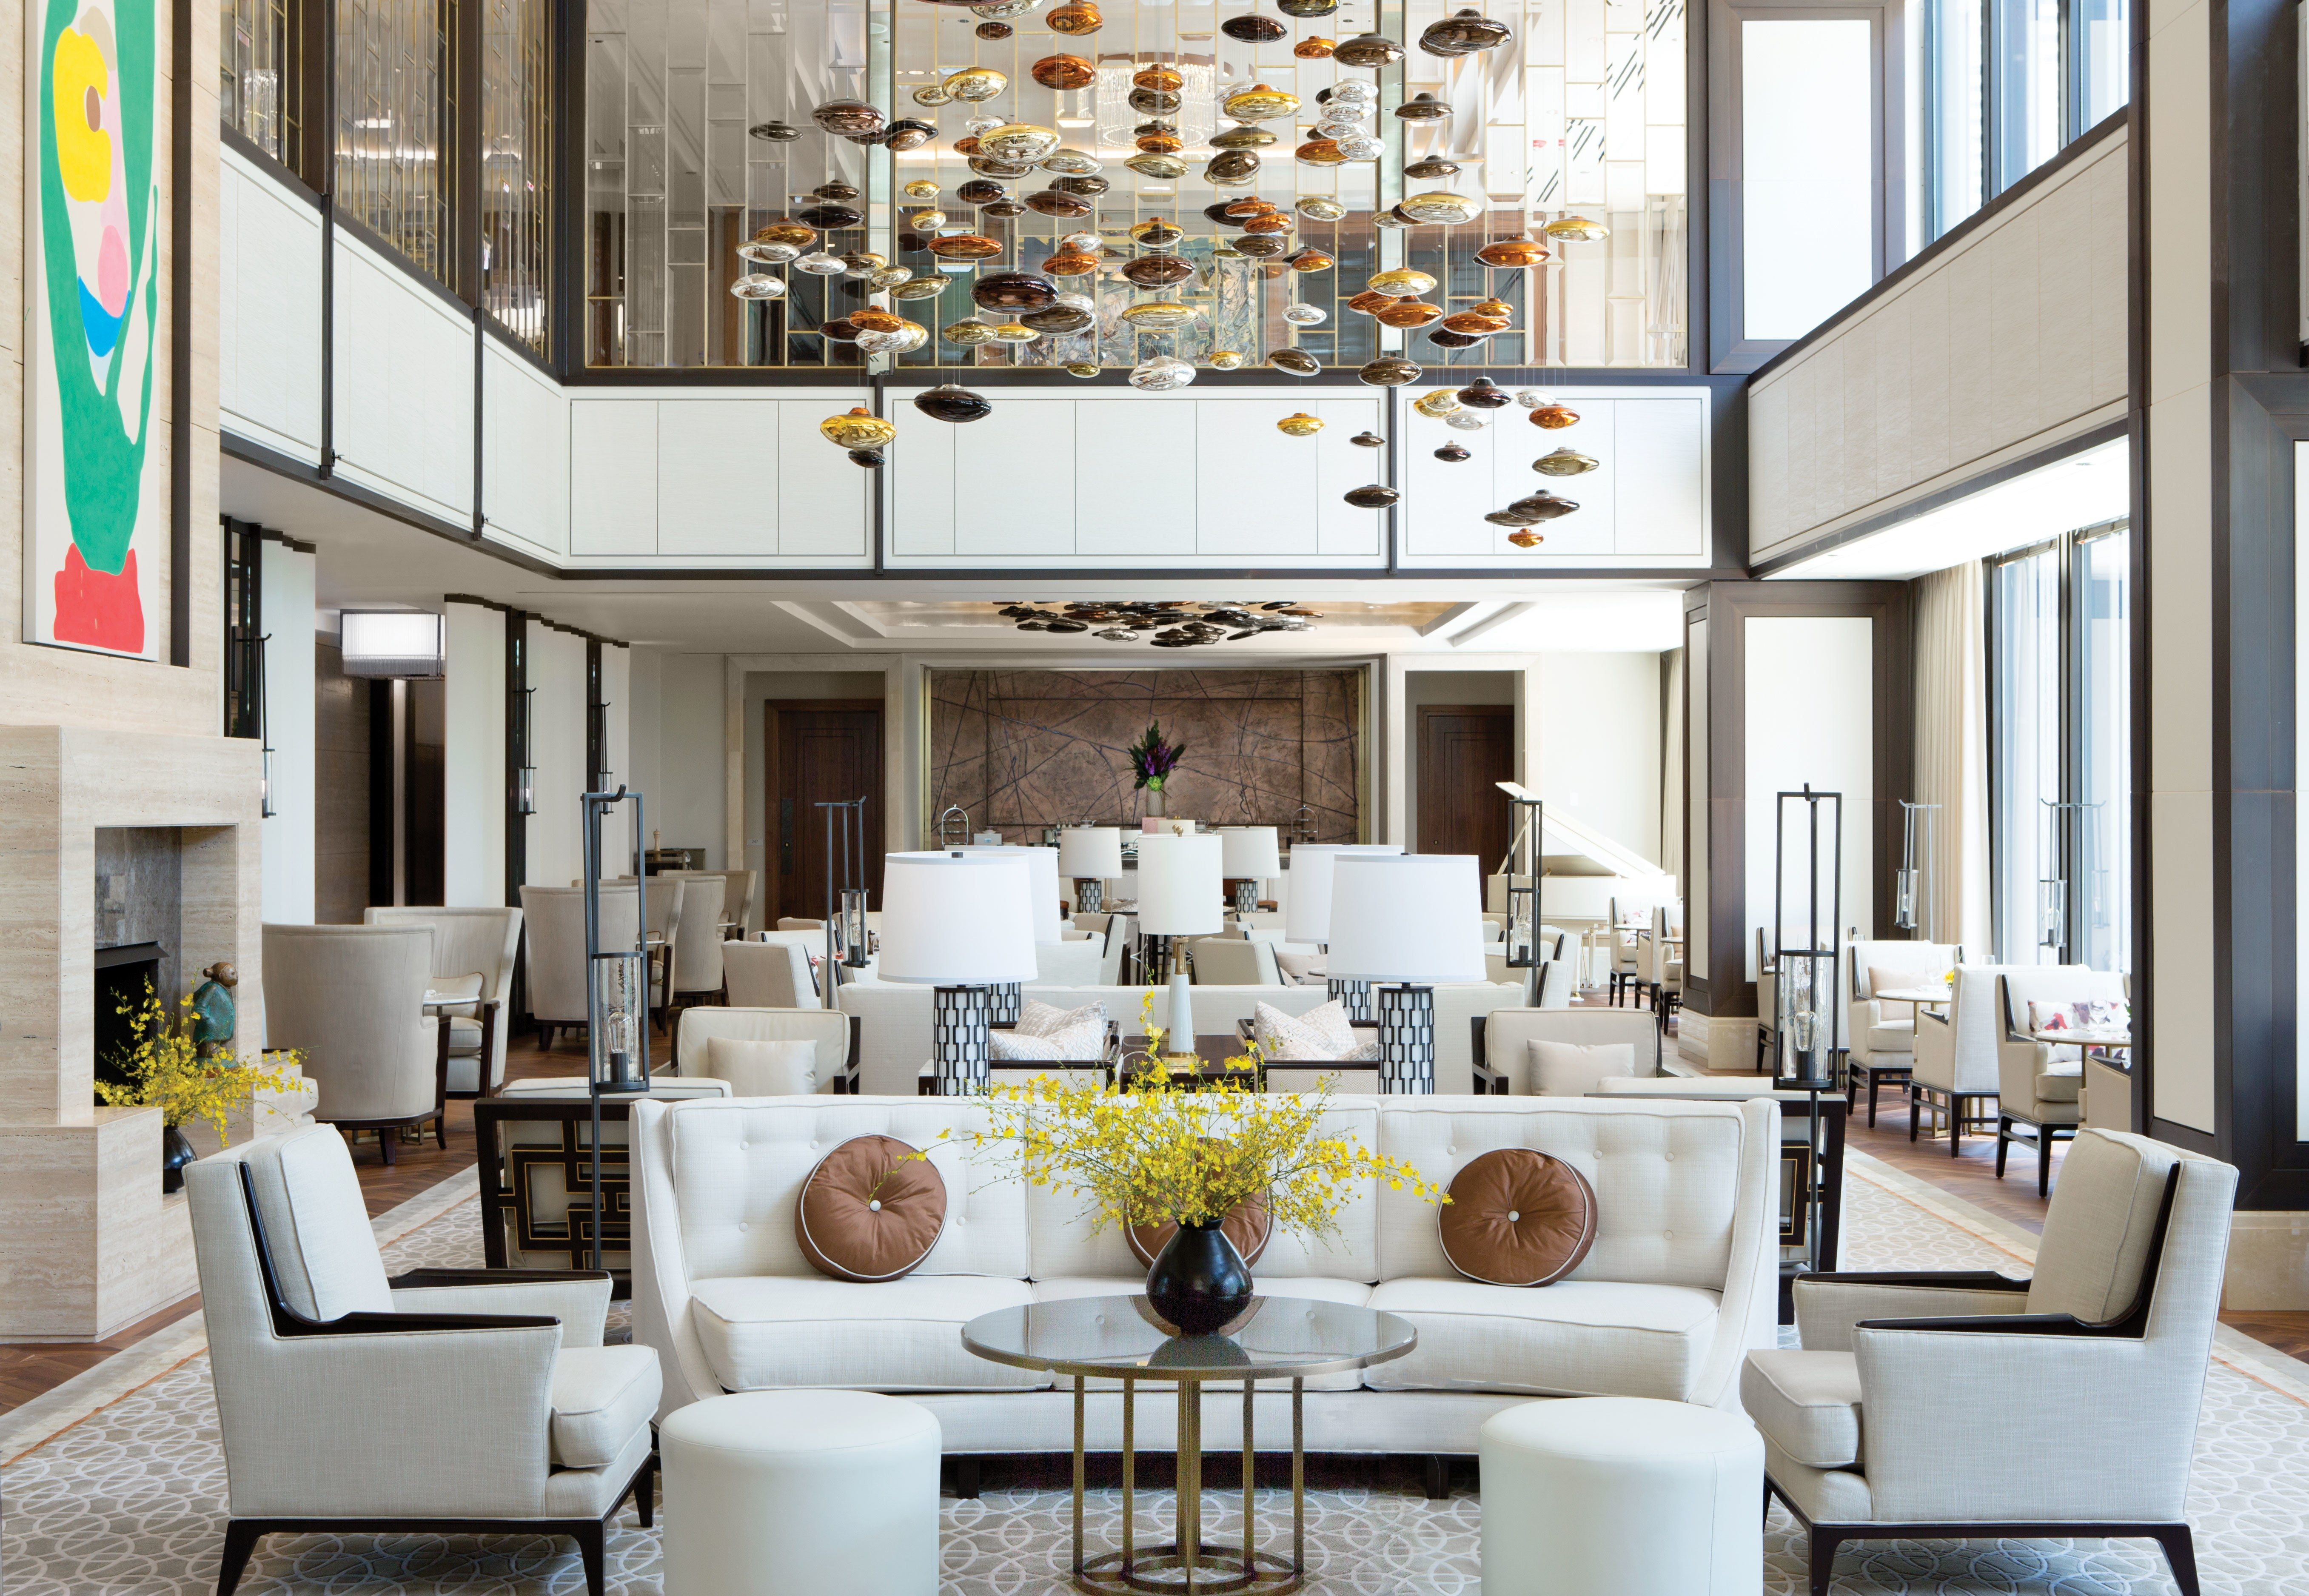 8 chicago hotels for the design savvy traveler chi town - Top interior design firms chicago ...